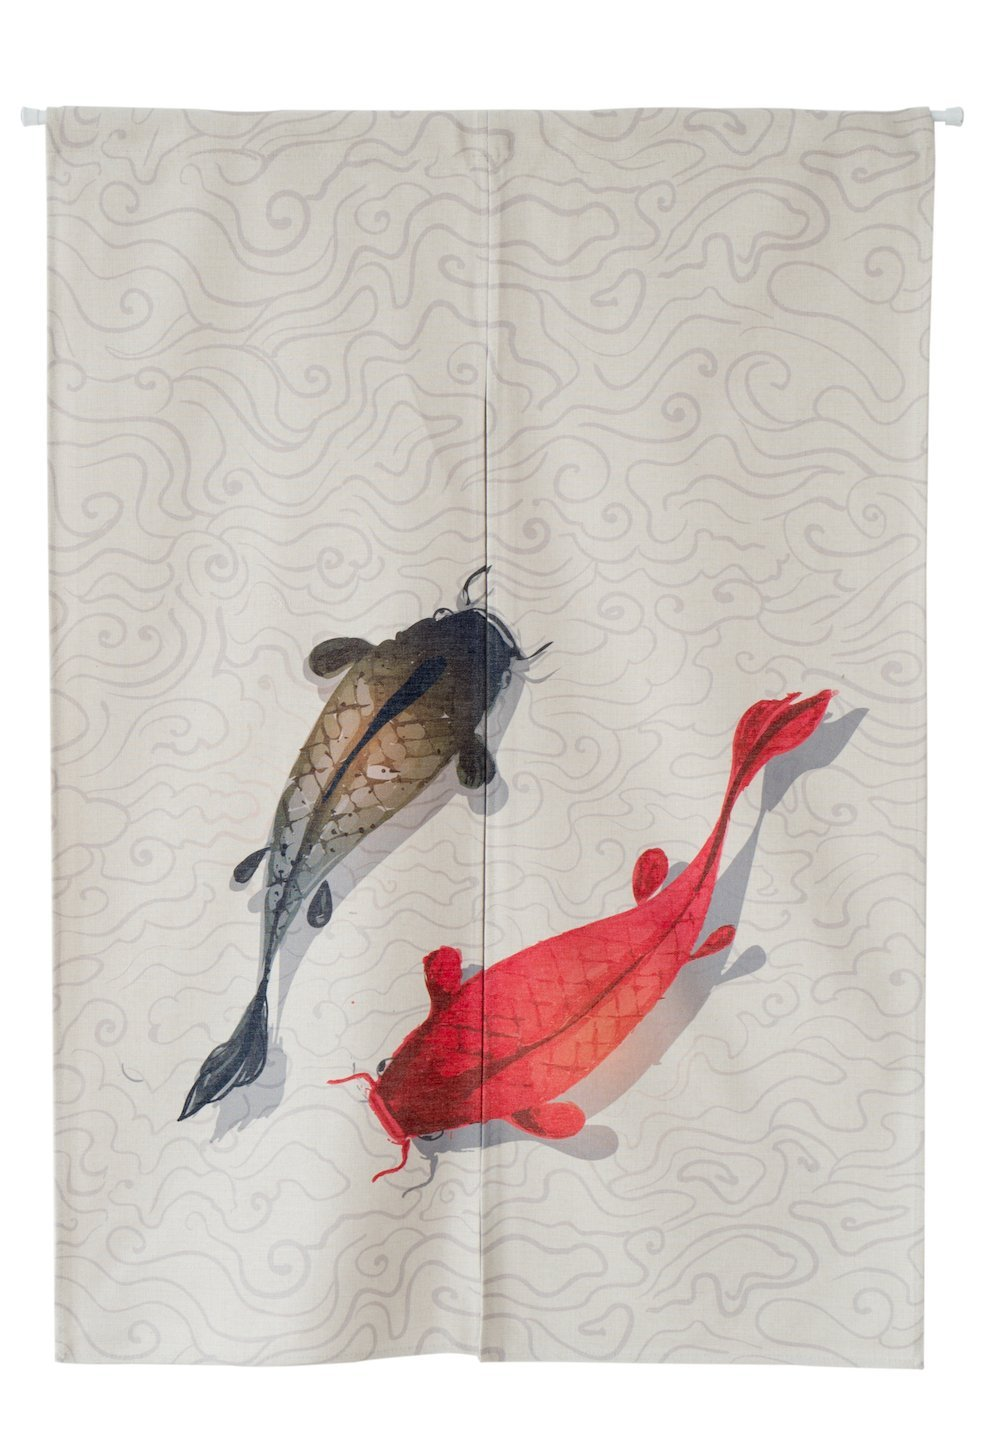 KARUILU home Japanese Noren Doorway Curtain / Tapestry 33.5'' Width x 47.2'' Long with Moonlight over the Lotus Pond (Koi)